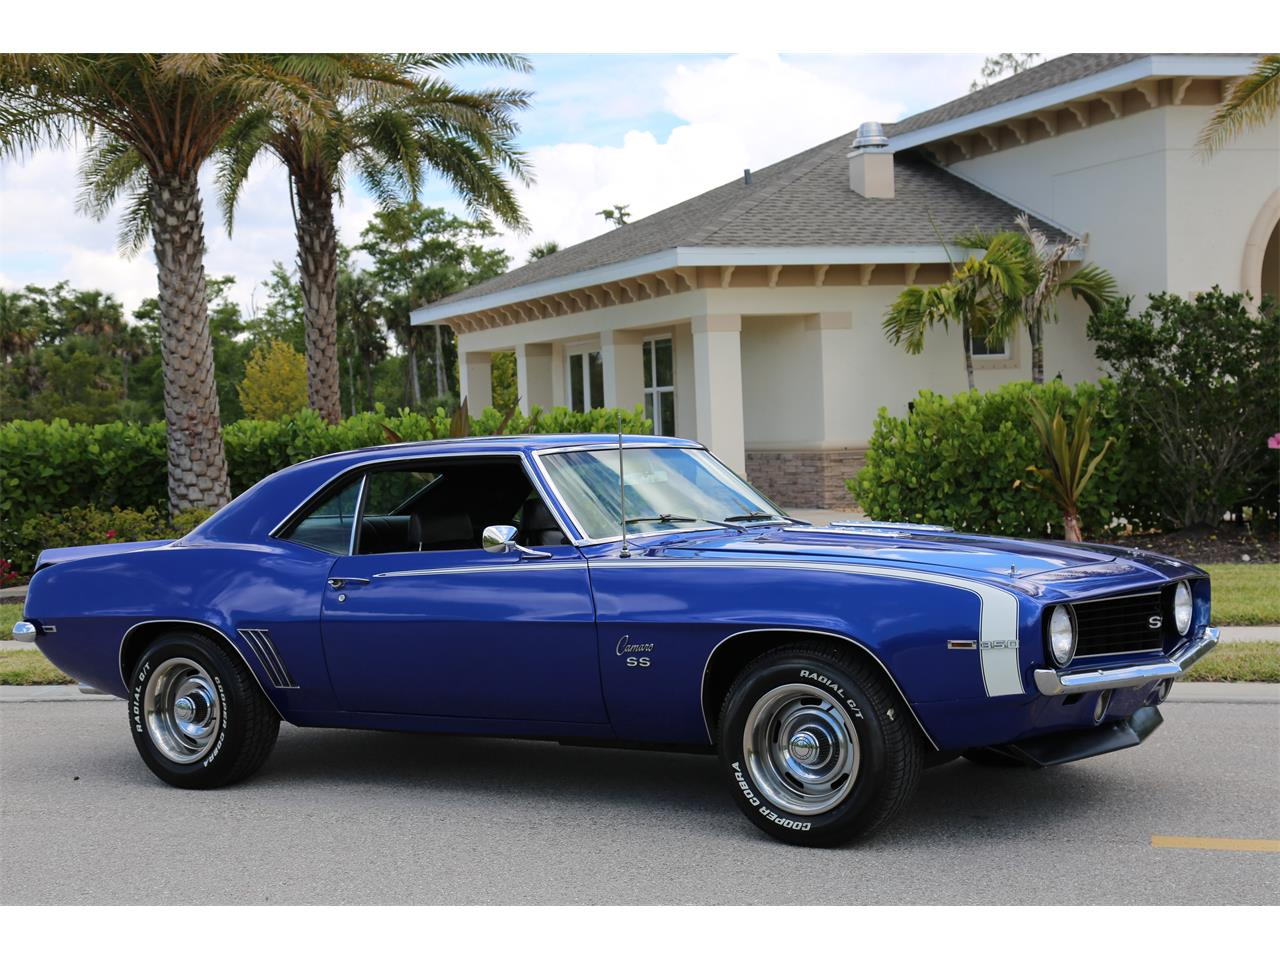 Large Picture of 1969 Camaro SS located in Florida - $31,500.00 Offered by Muscle Cars For Sale Inc. - Q2T7